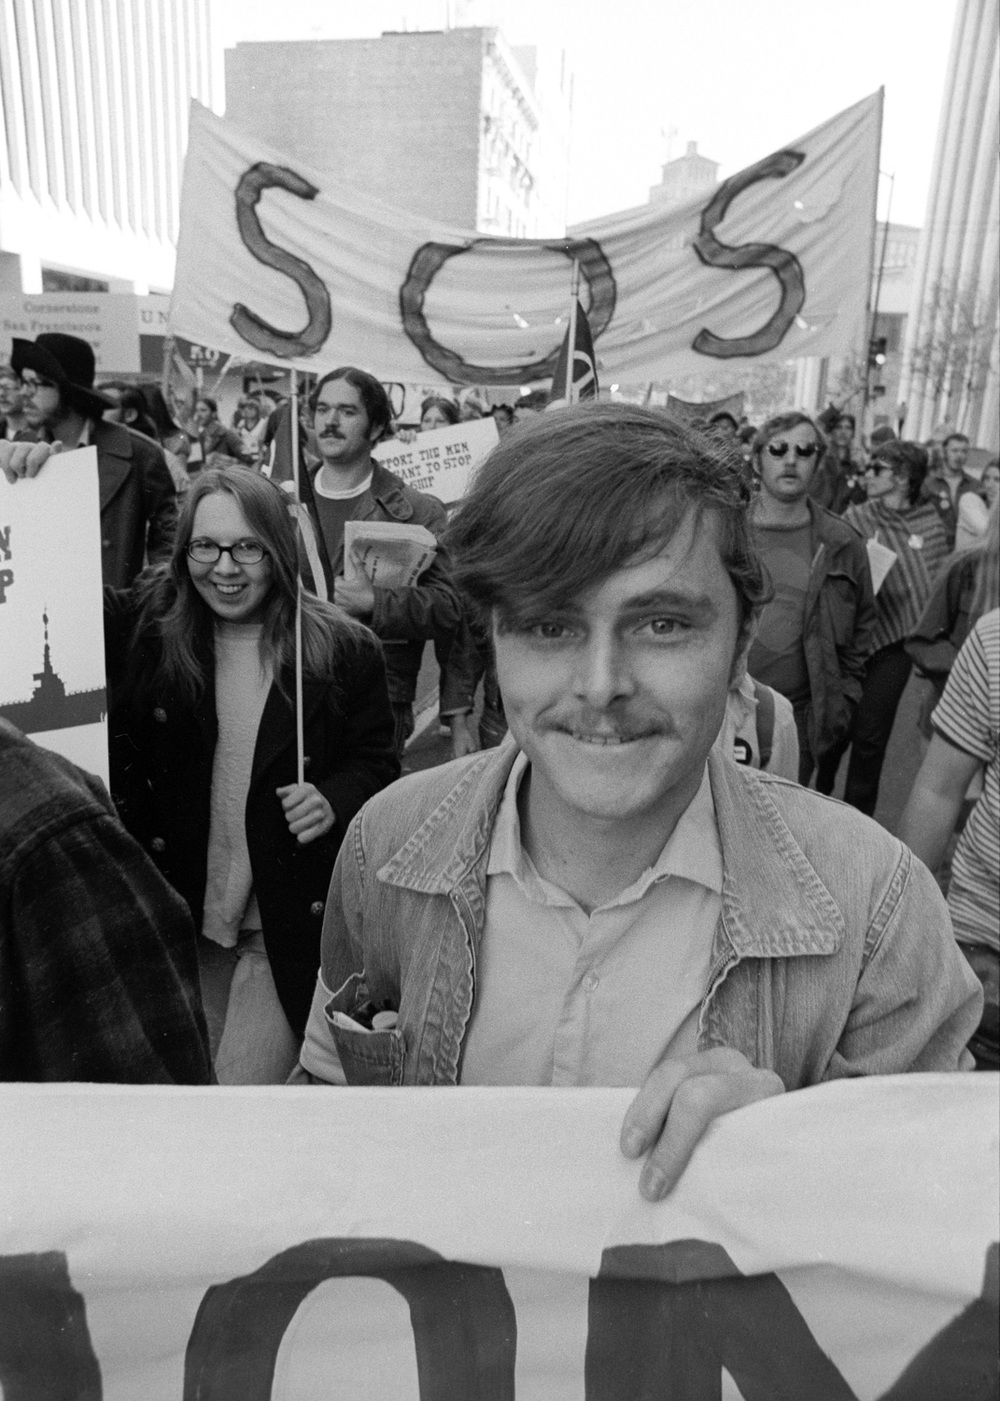 This sailor is happy to be marching with the Stop Our Ship group from the USS Coral Sea. This contingent led this anti-war march down Market Street on November 6,  1971.